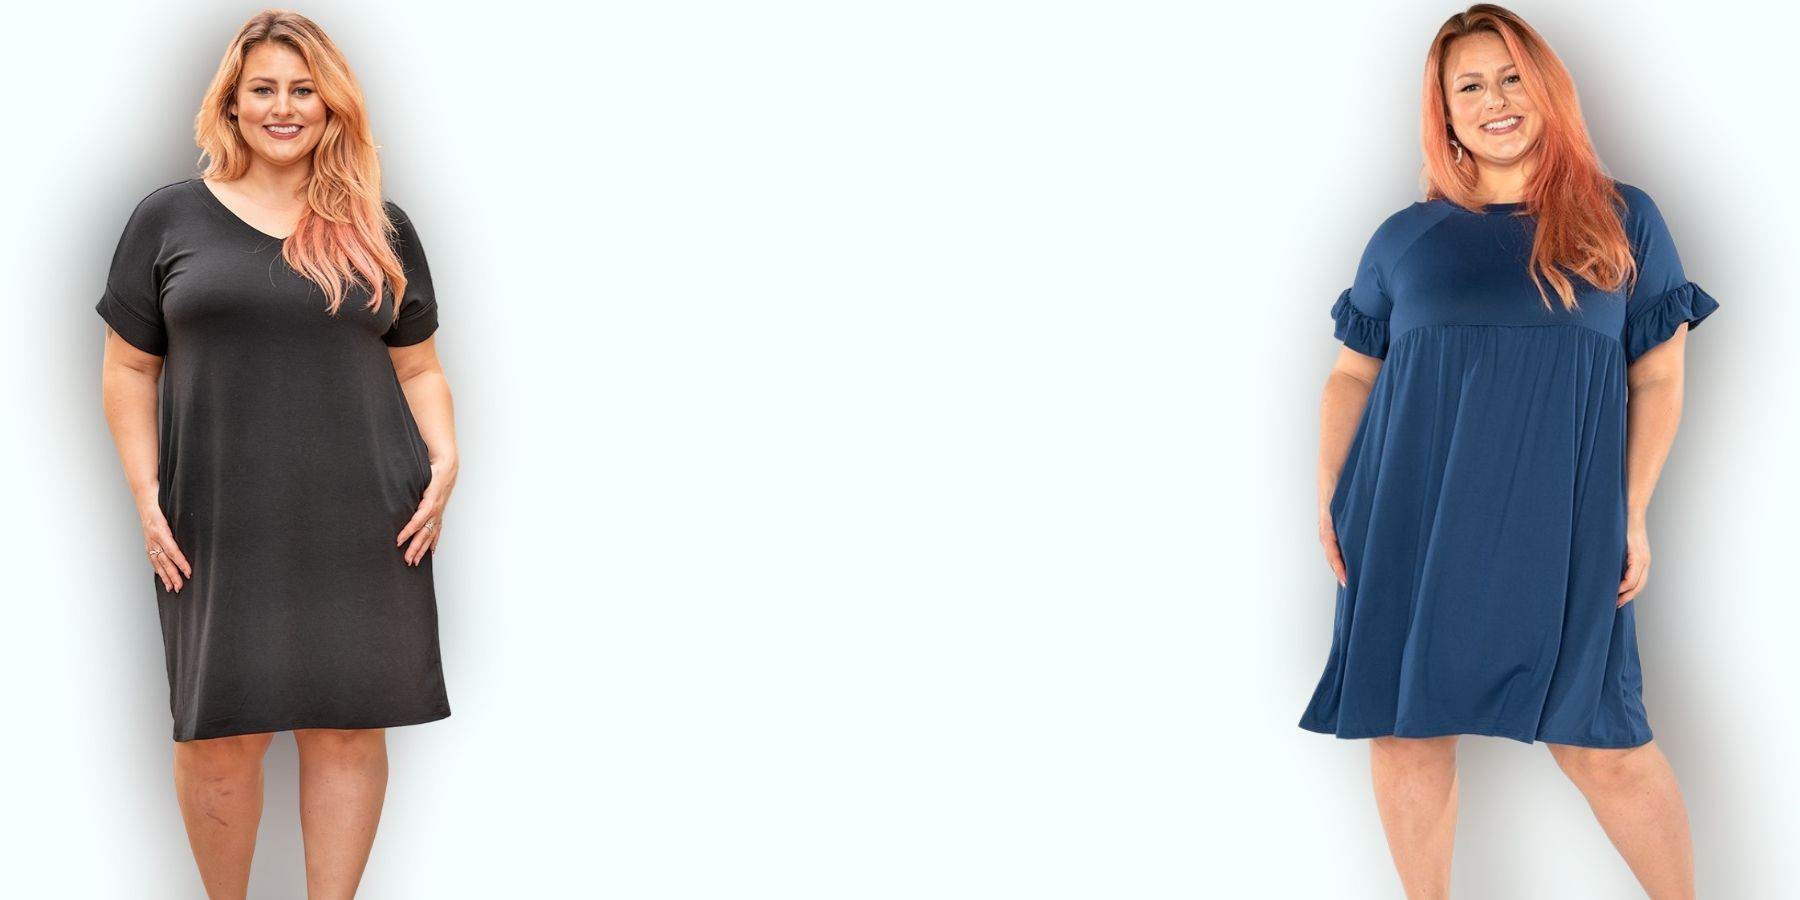 Wholesale Plus Size Dresses Collection from the Preferred wholesale vendor USA